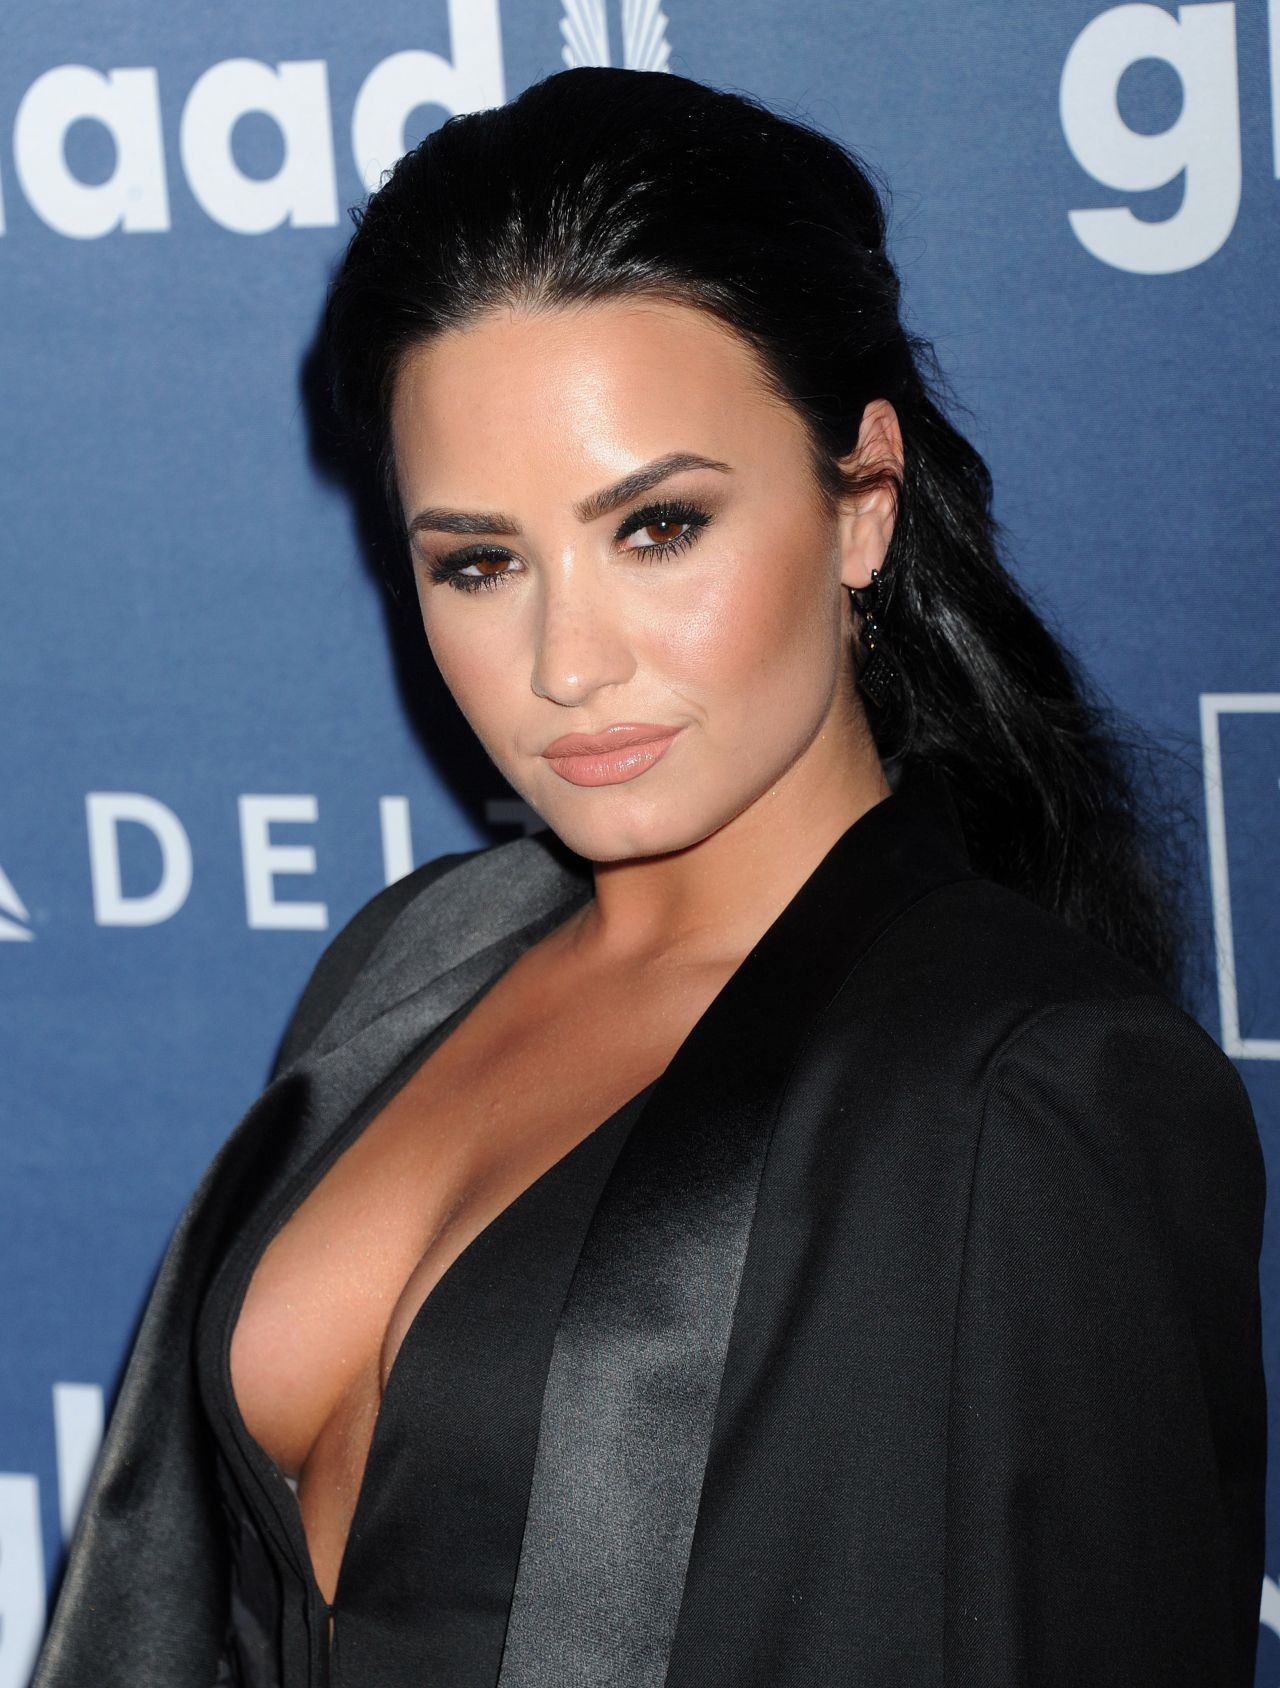 demi lovato - photo #18